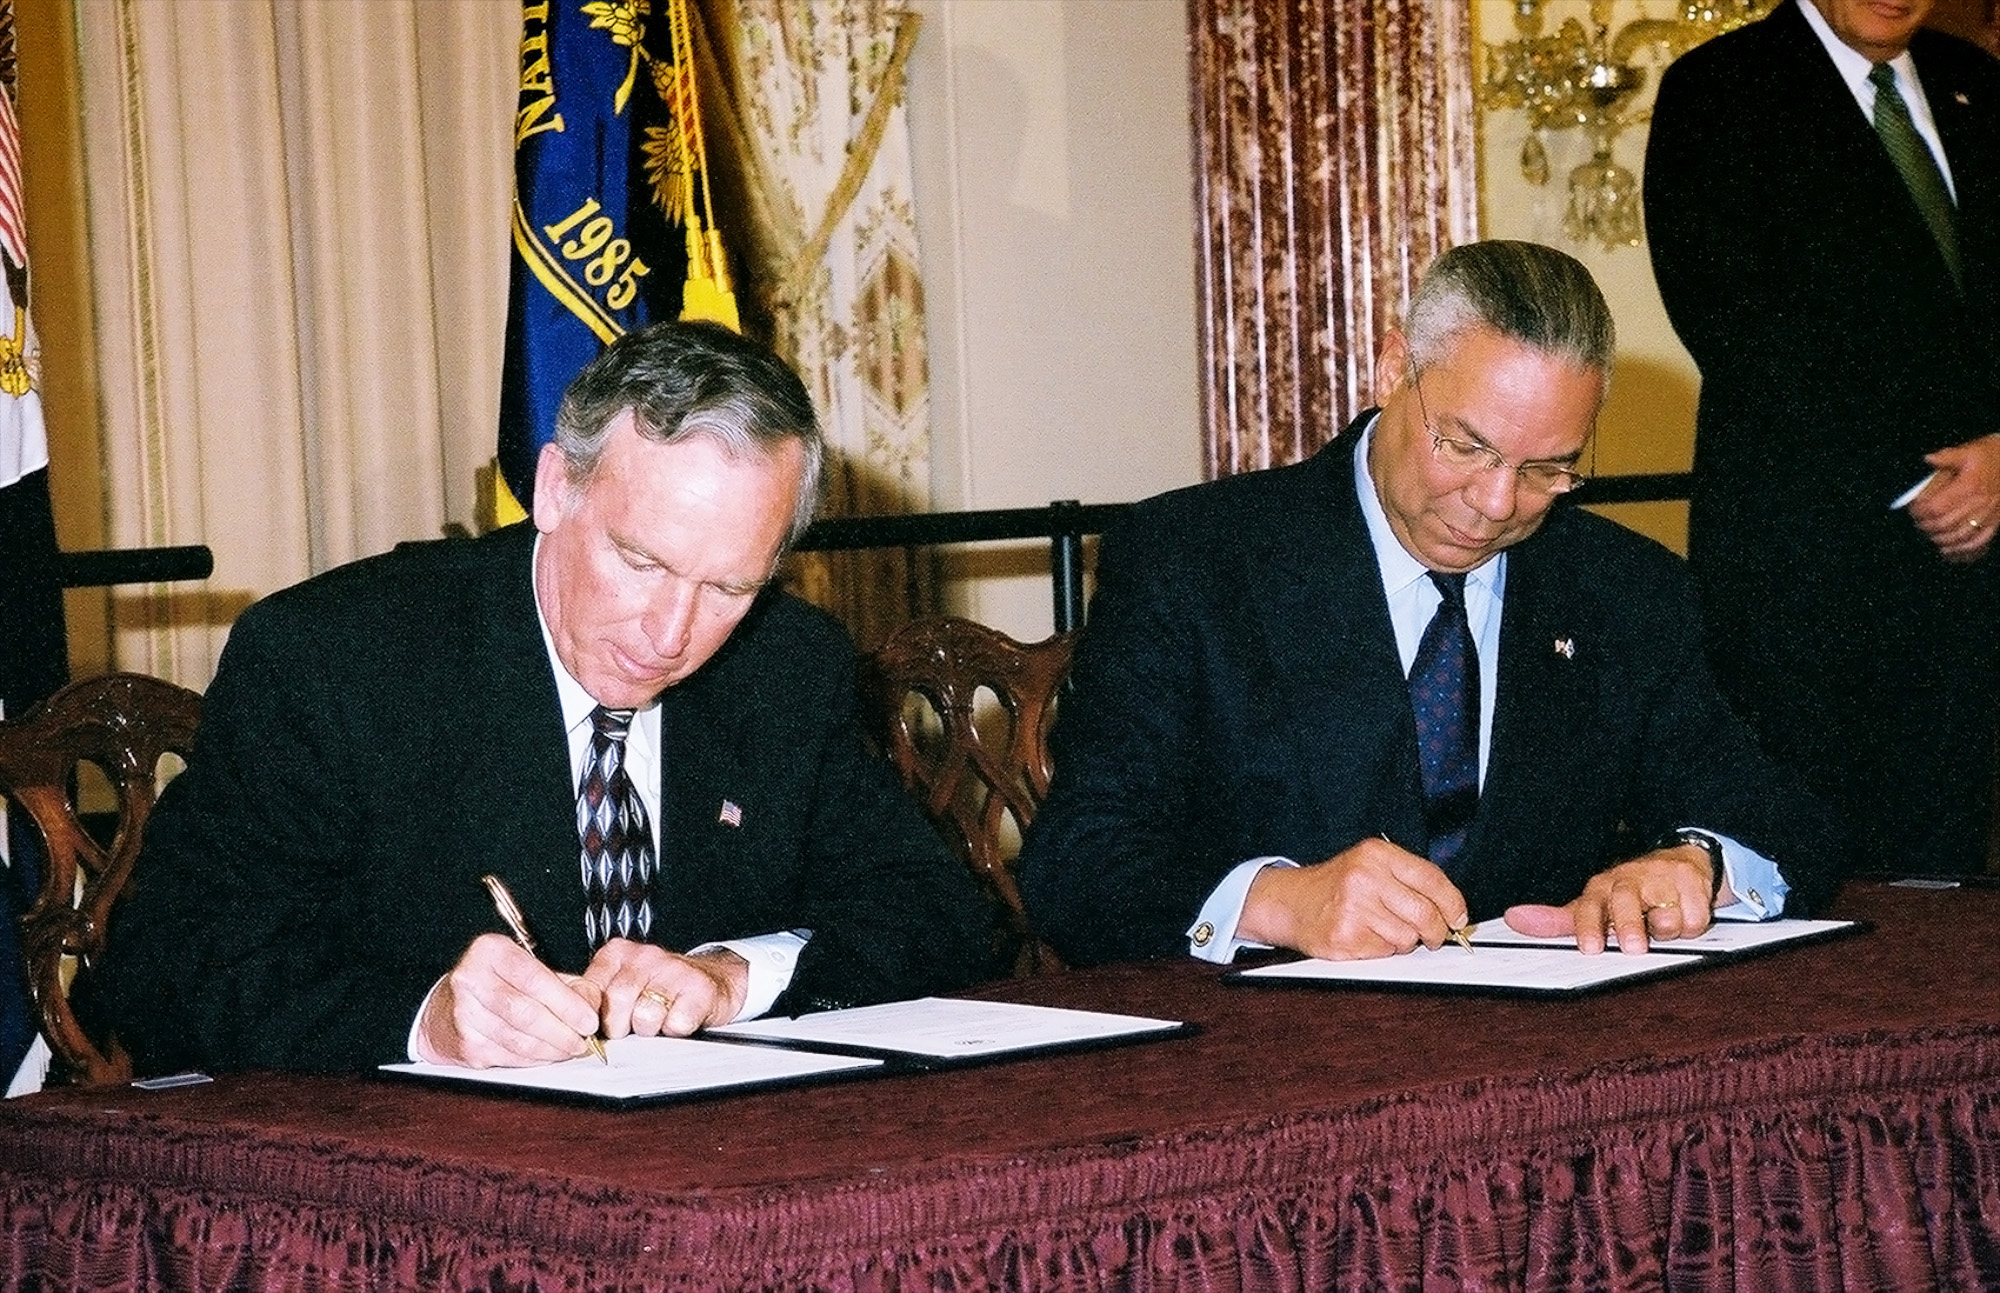 Secretary of State Colin L. Powell In A Ceremony To Mark Transfer Of The First Increment of Electronic Documents from Department of State